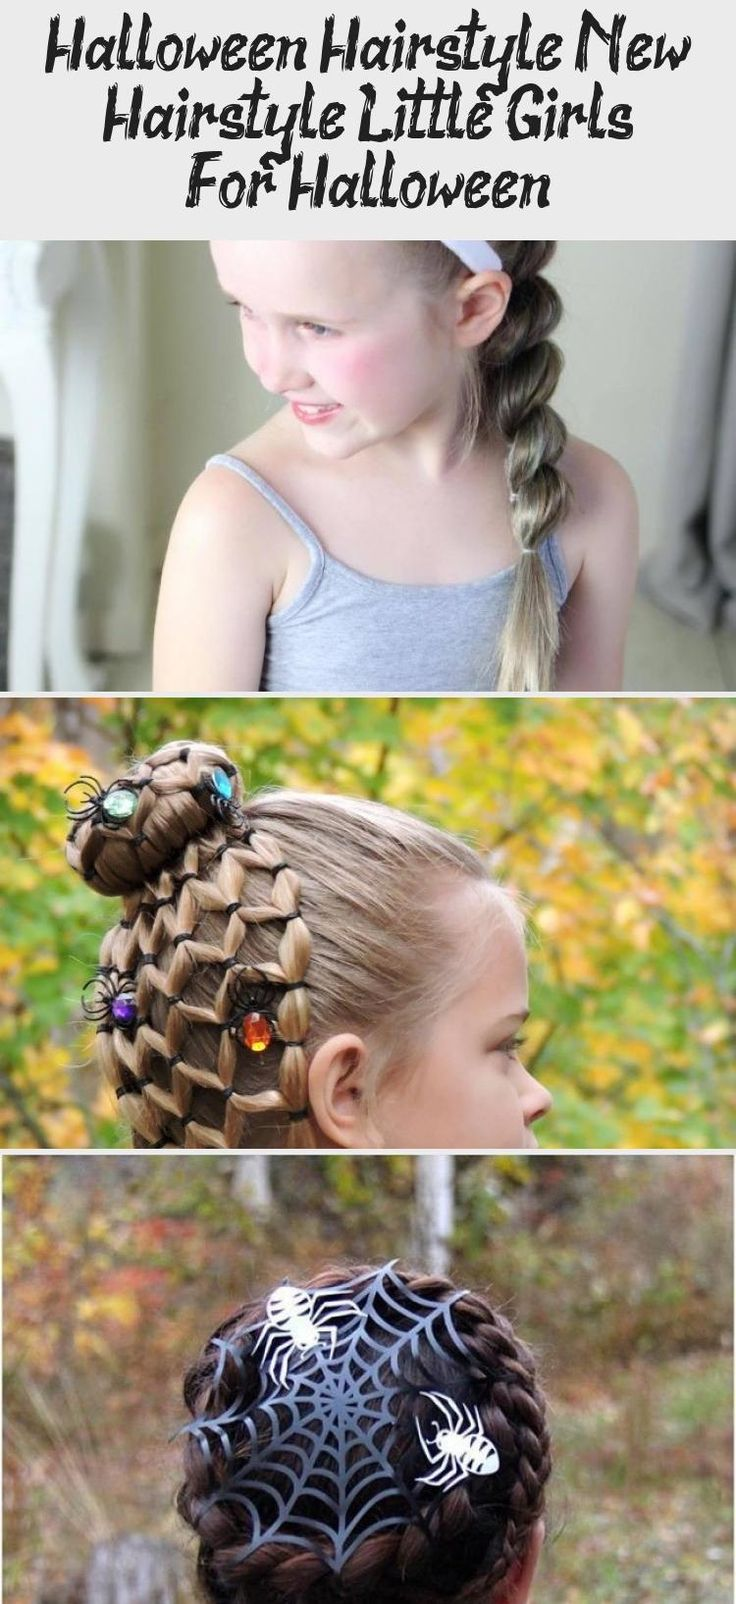 halloween hairstyle New: hairstyle little girls for halloween  #girls #hairstyle #halloween #little #babyhairstylesForParty #babyhairstylesBaptism #babyhairstylesGirl #babyhairstylesBob #babyhairstylesWithBangs